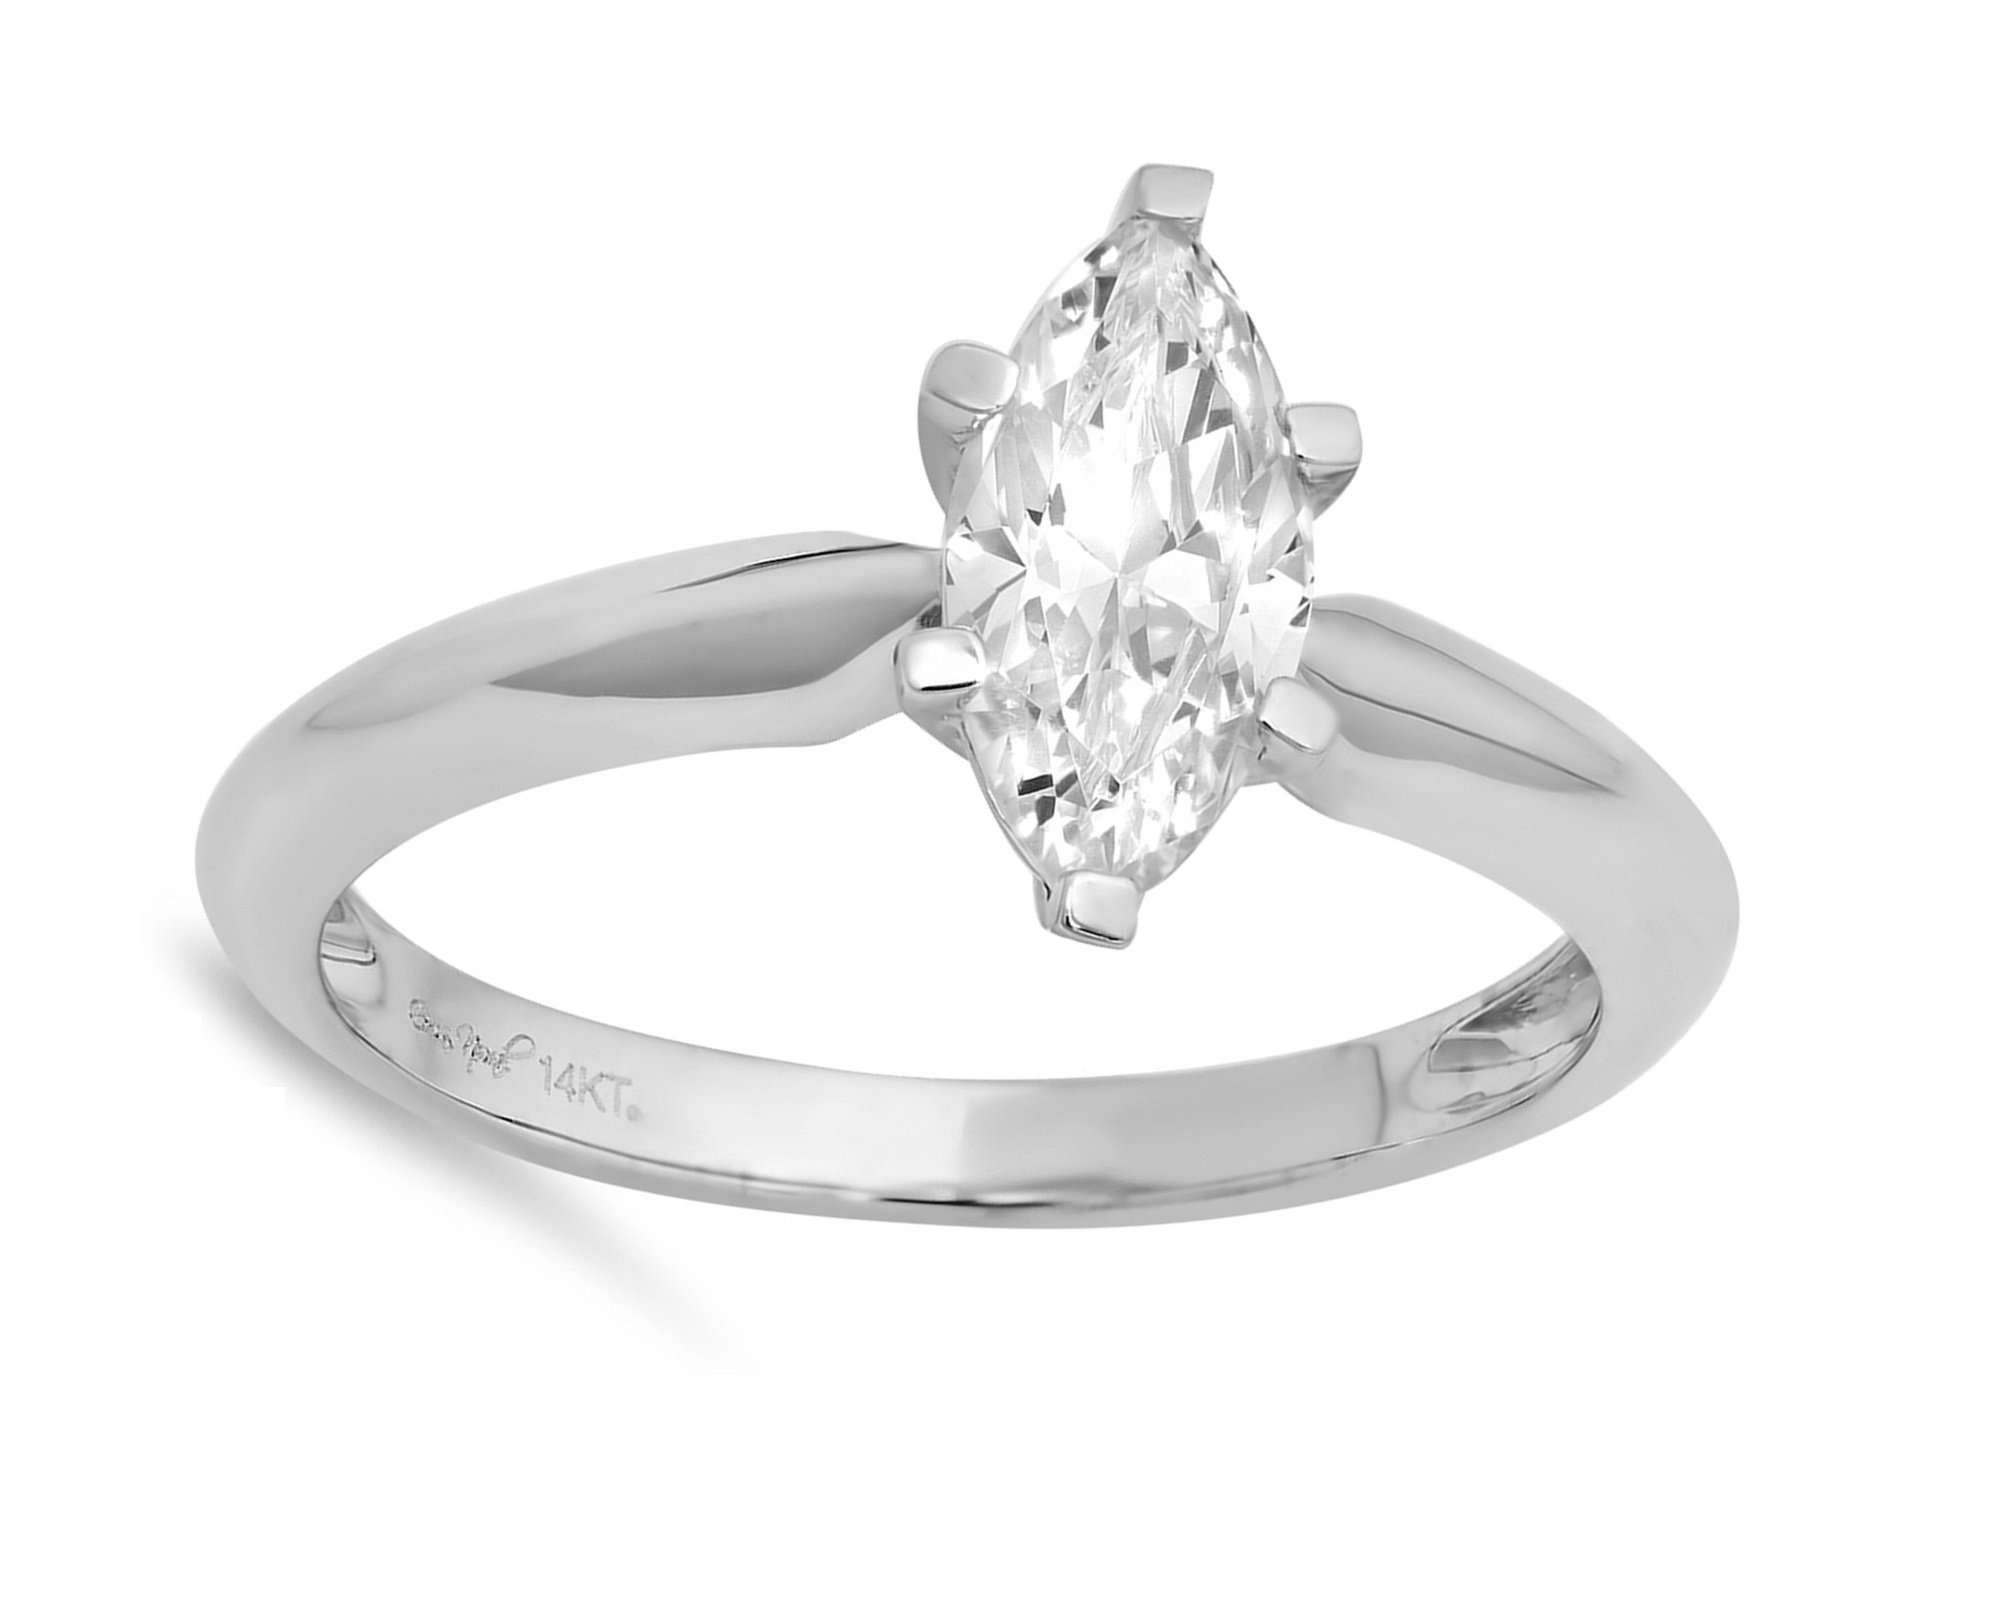 1.2 Ct Marquise Brilliant Cut Solitaire Engagement Wedding Bridal Anniversary Ring 14K White Gold, Size 6, Clara Pucci